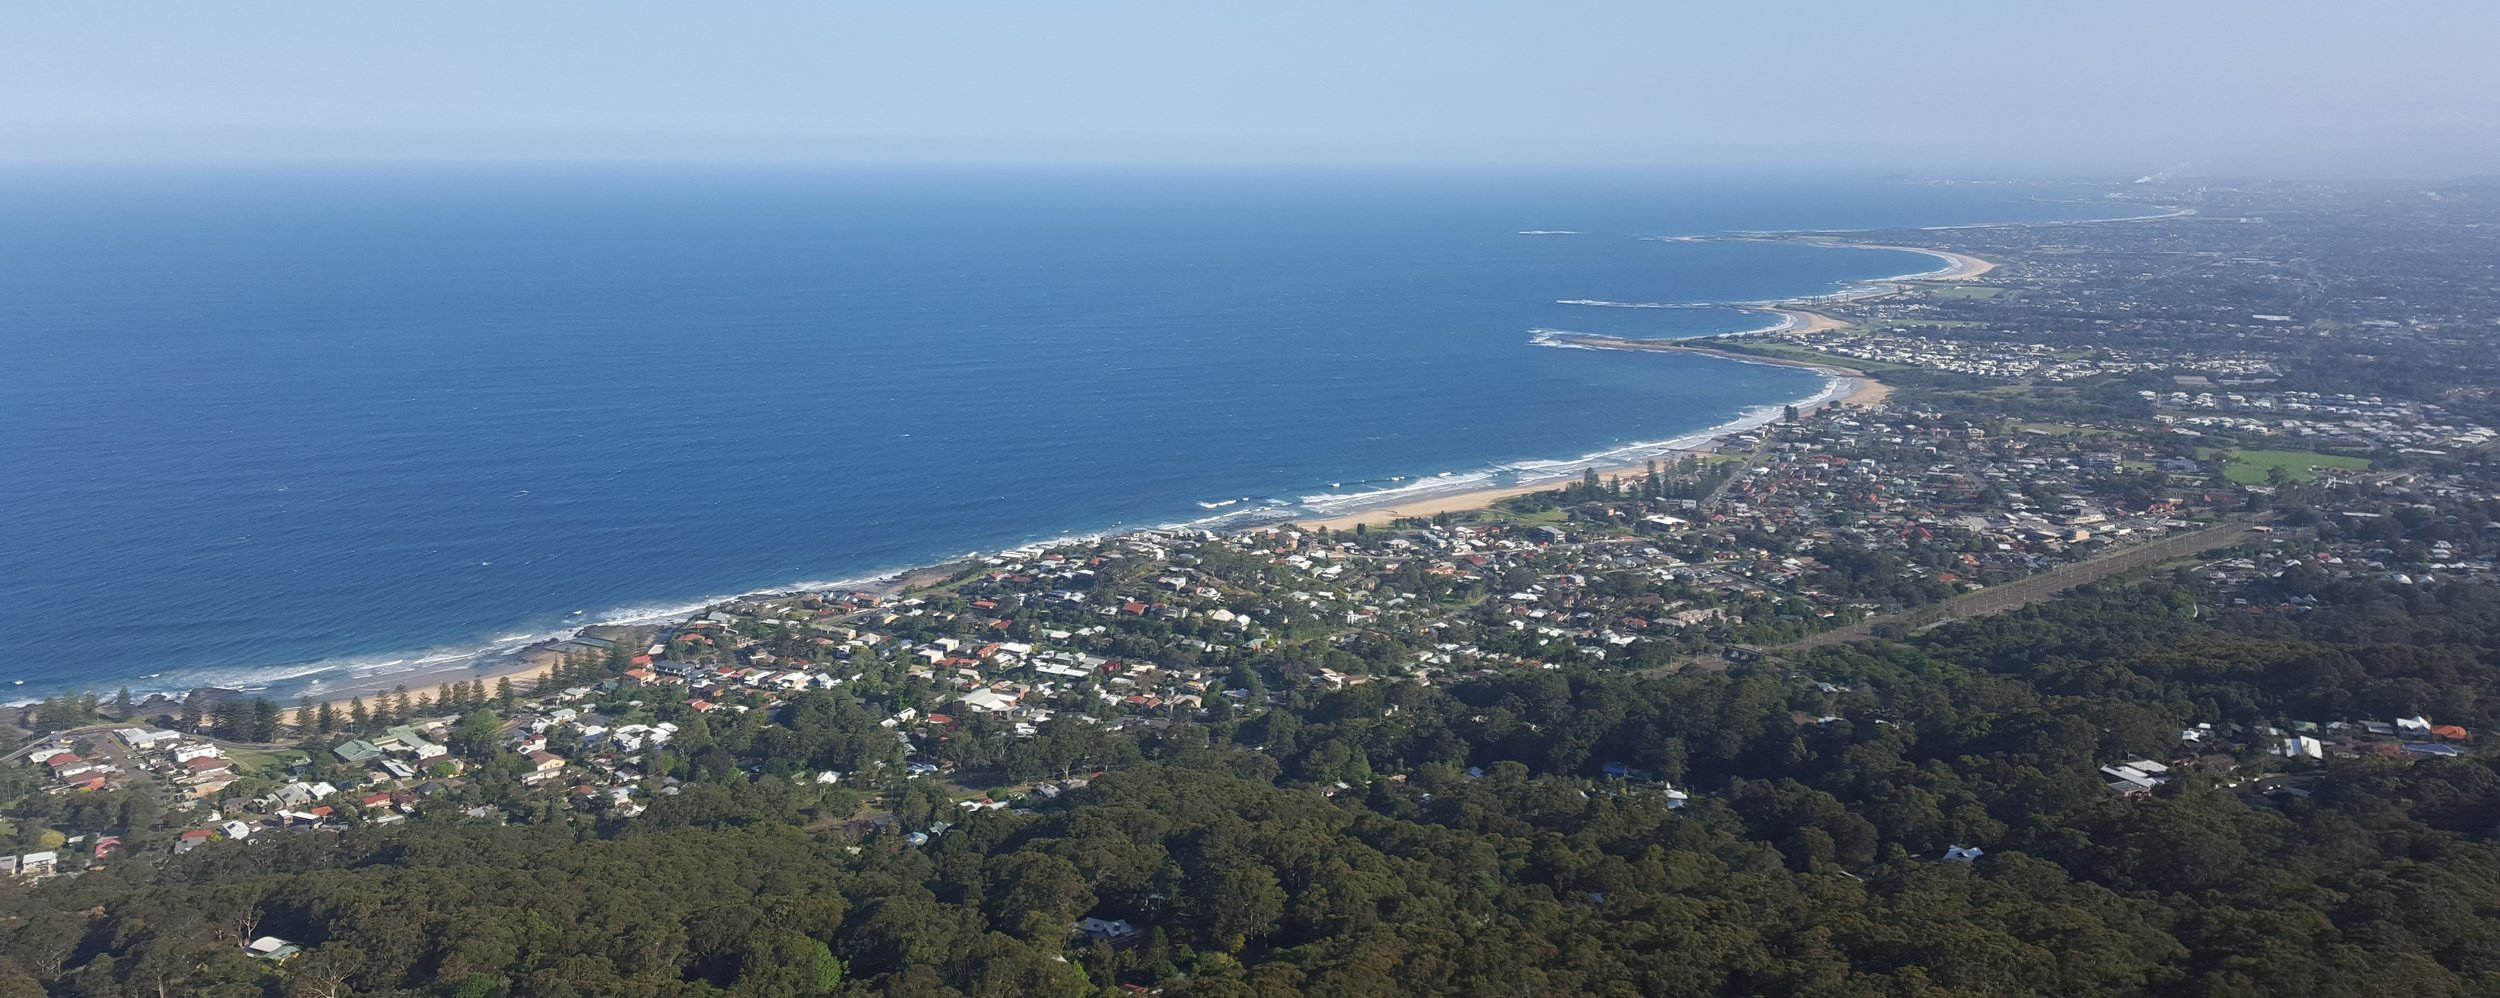 View from SublimePoint Lookout